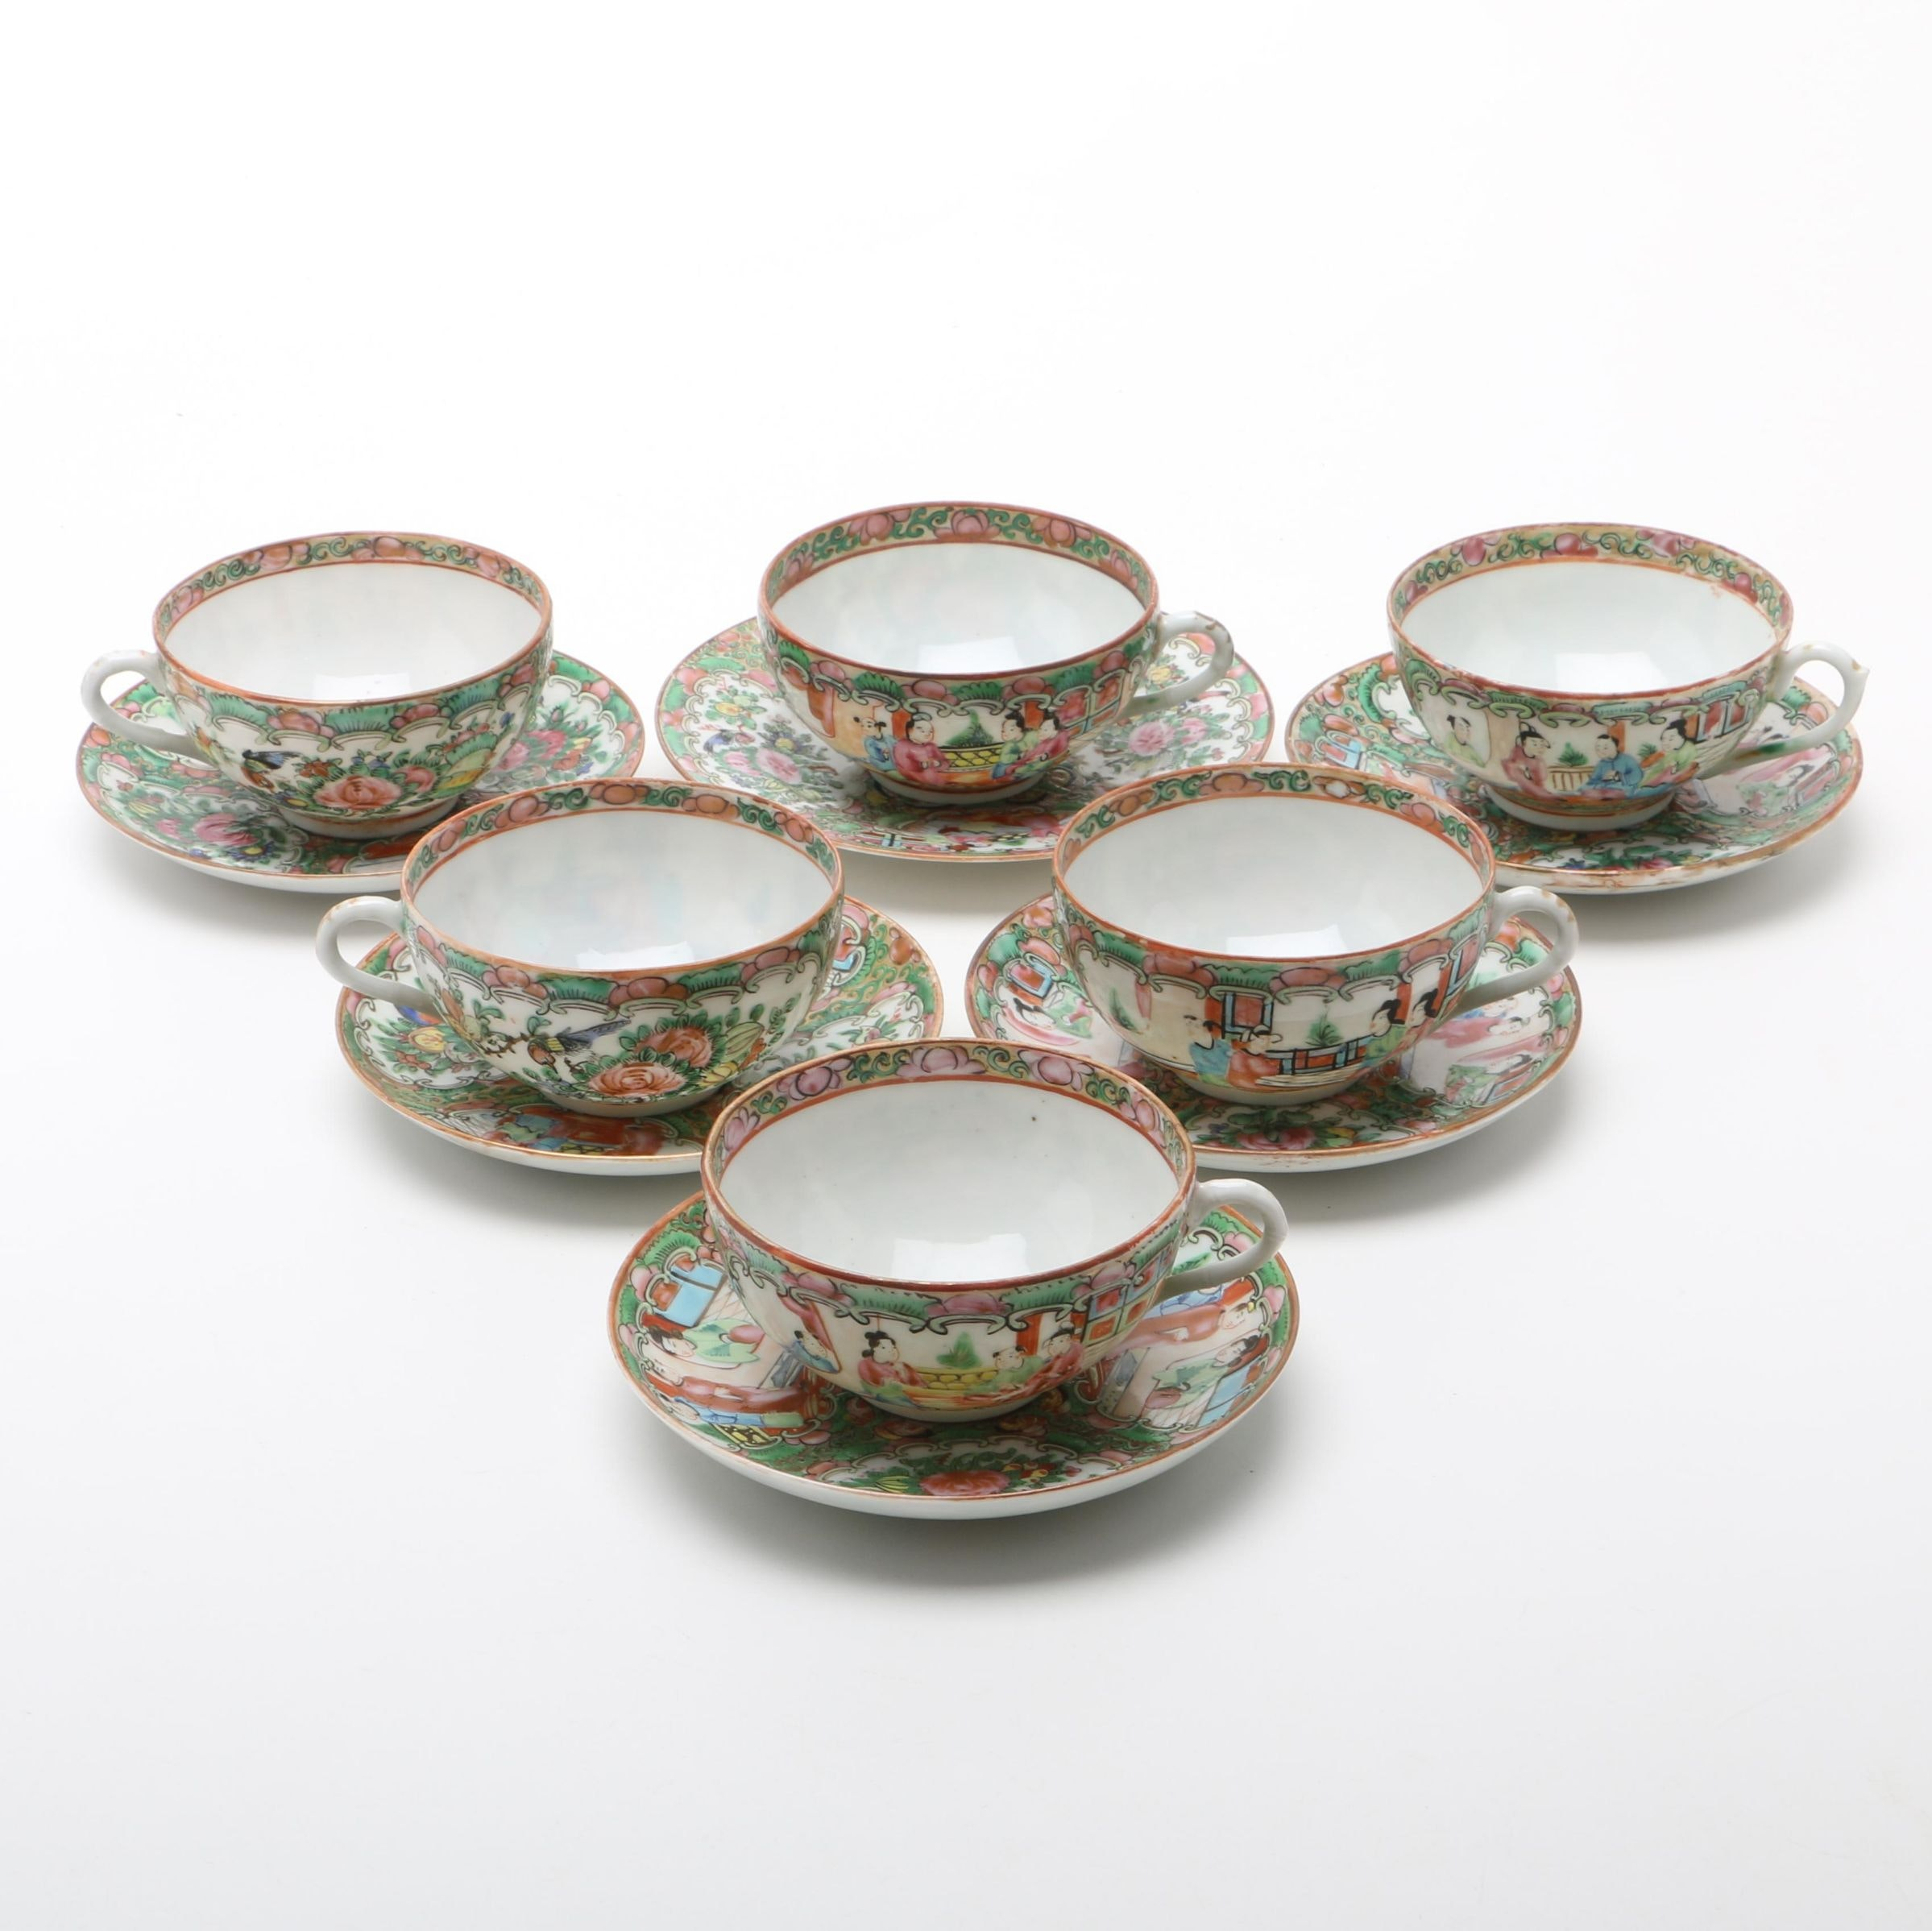 Antique Rose Medallion Teacups and Saucers